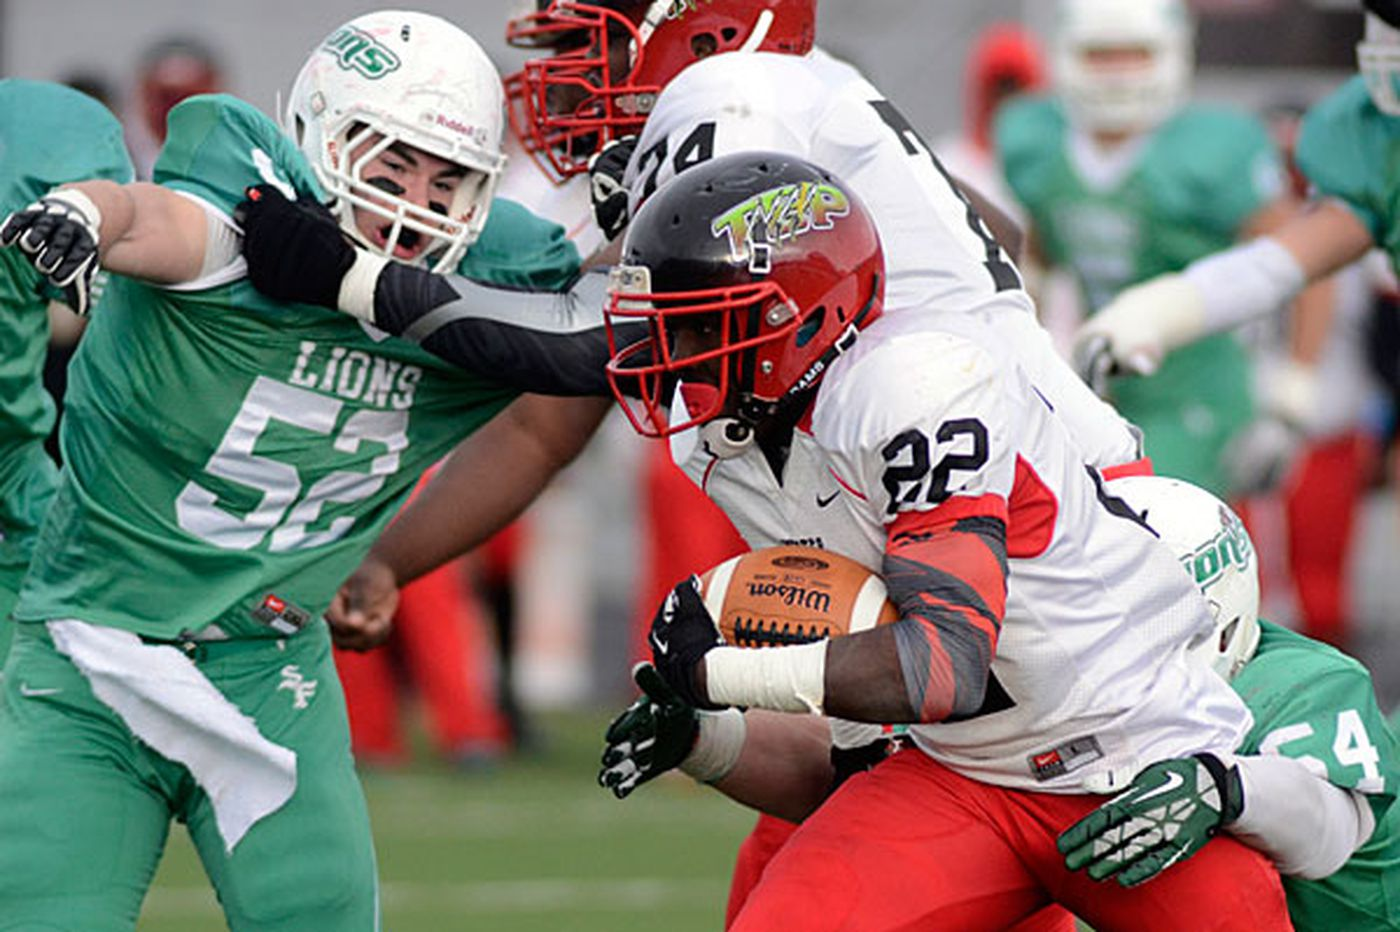 South Fayette routs Imhotep in Class AA final